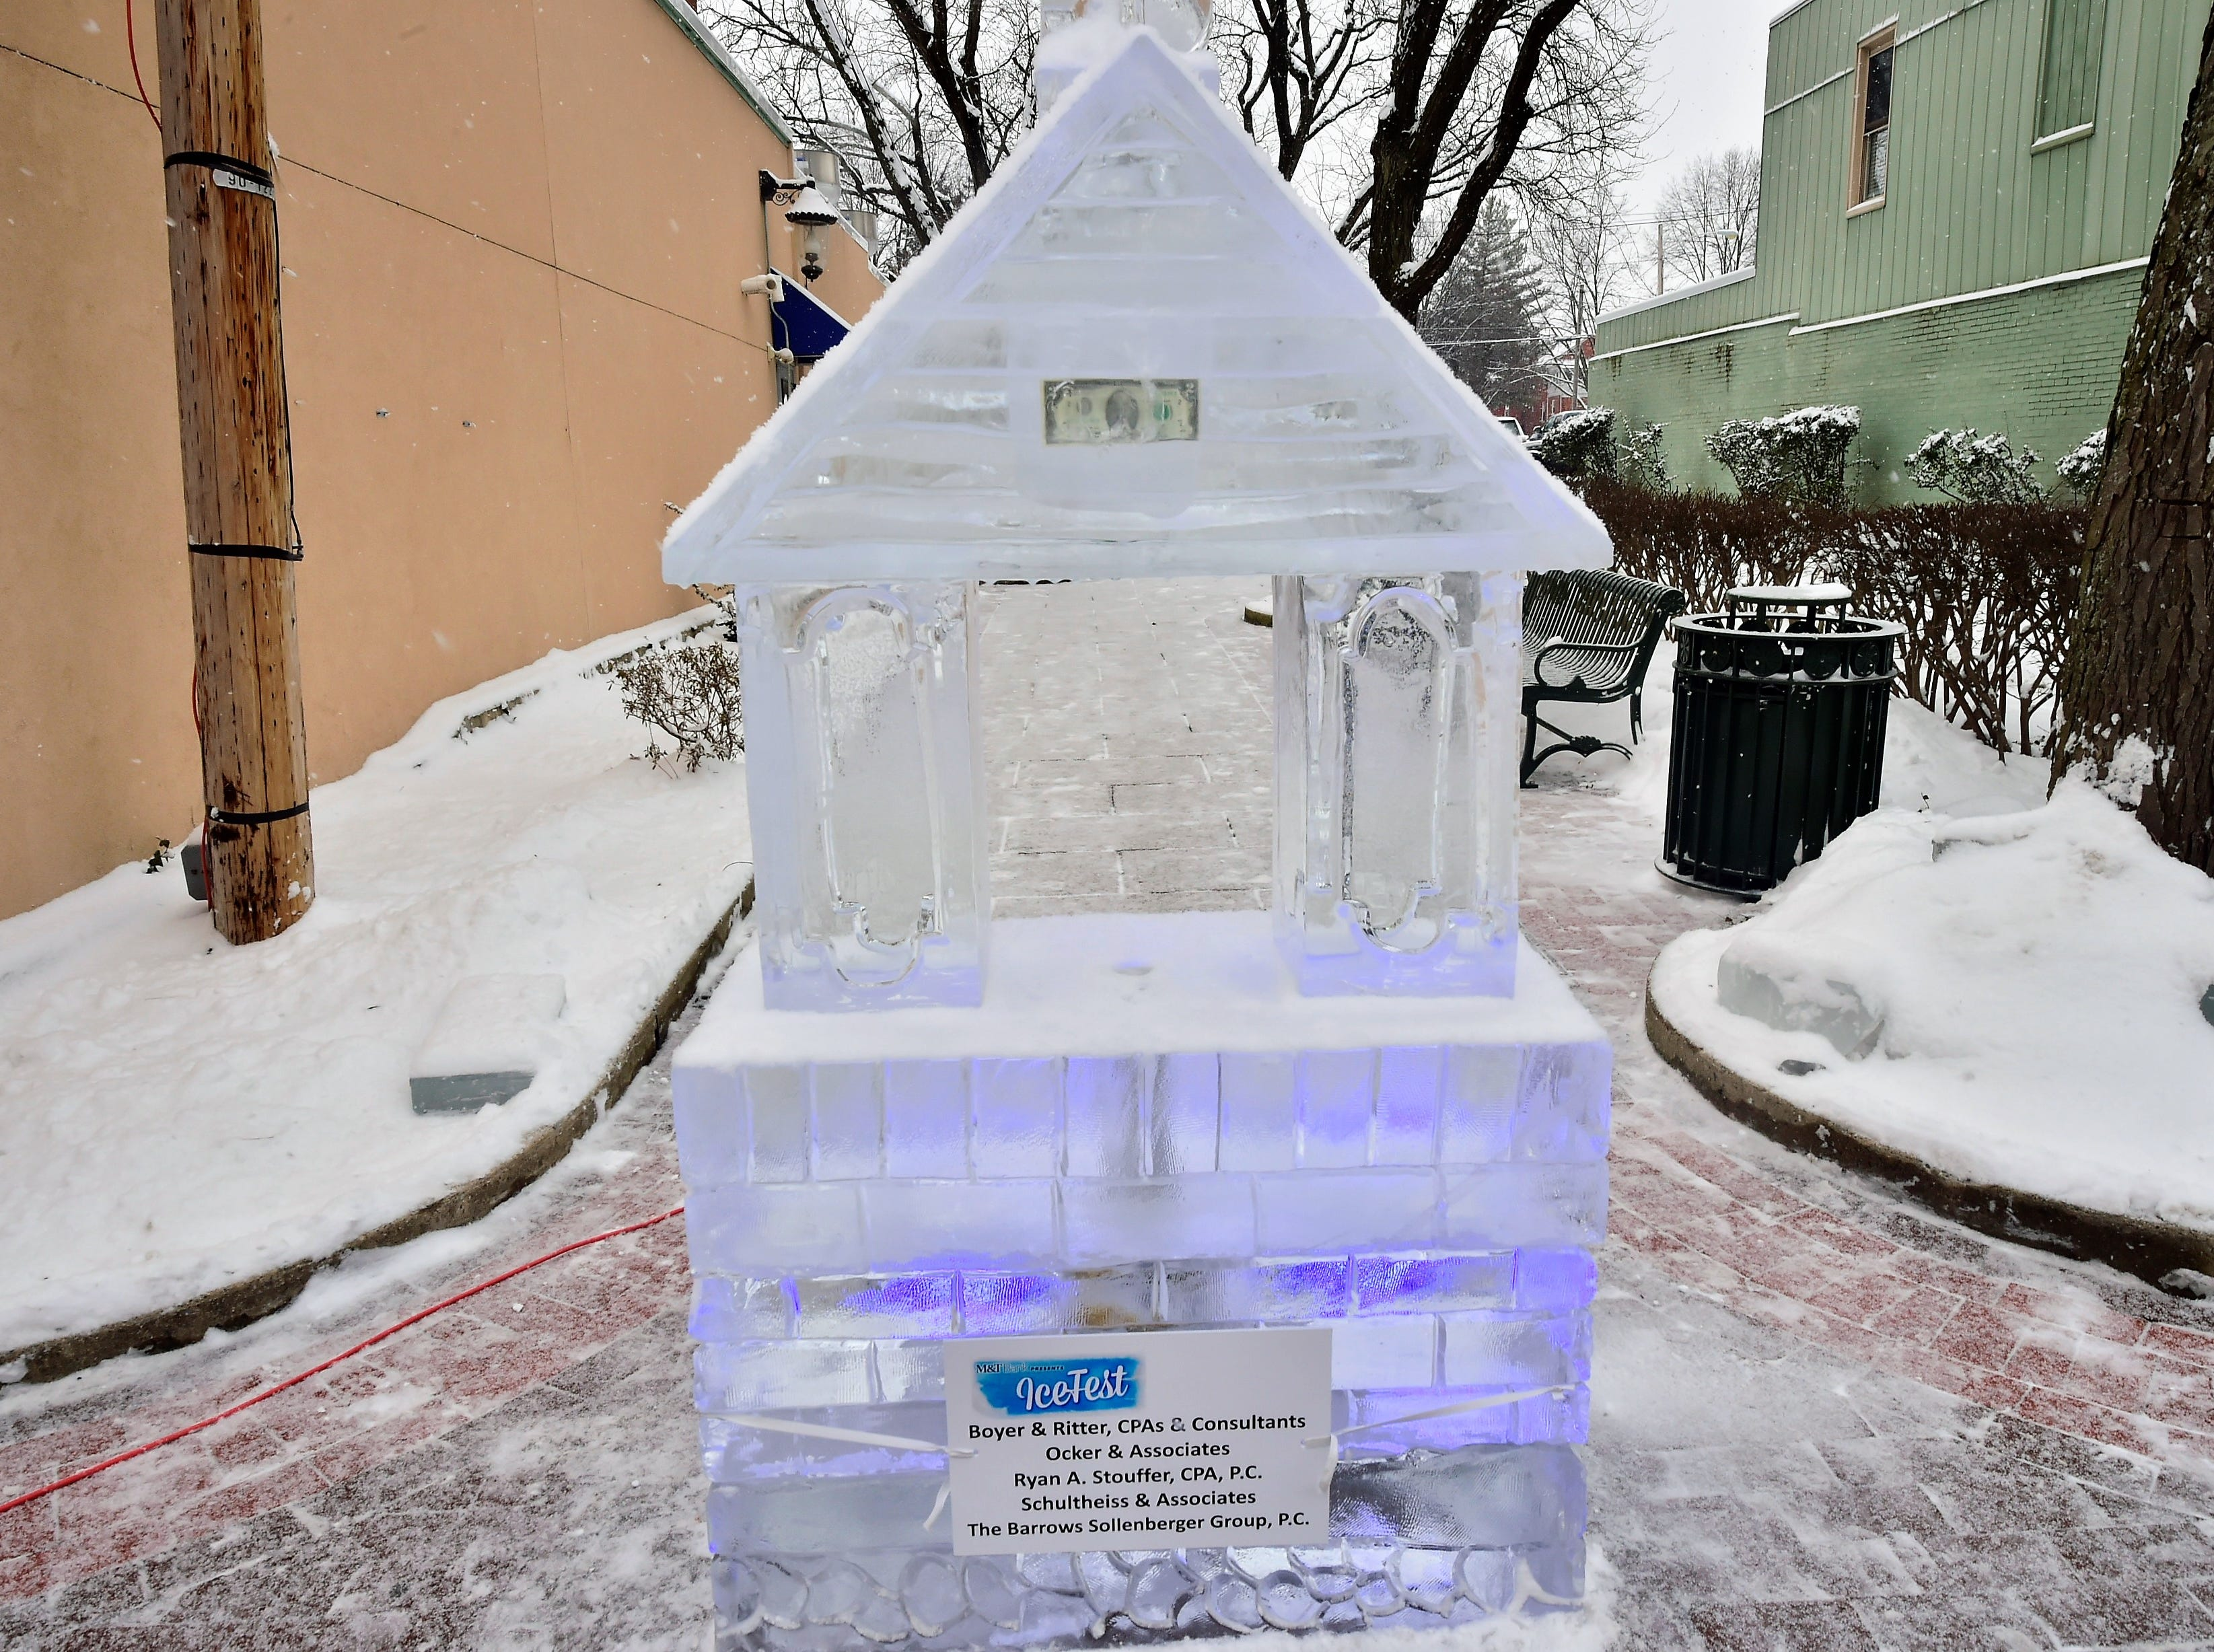 A $2 bill is frozen inside the top of this ice sculpture. DiMartino Ice Company carved around 80 ice sculptures for IceFest 2019 in Chambersburg. Here is a small fraction of them. All of the sculptures pictured in this gallery are located on South Main Street between the square and Washington Street.